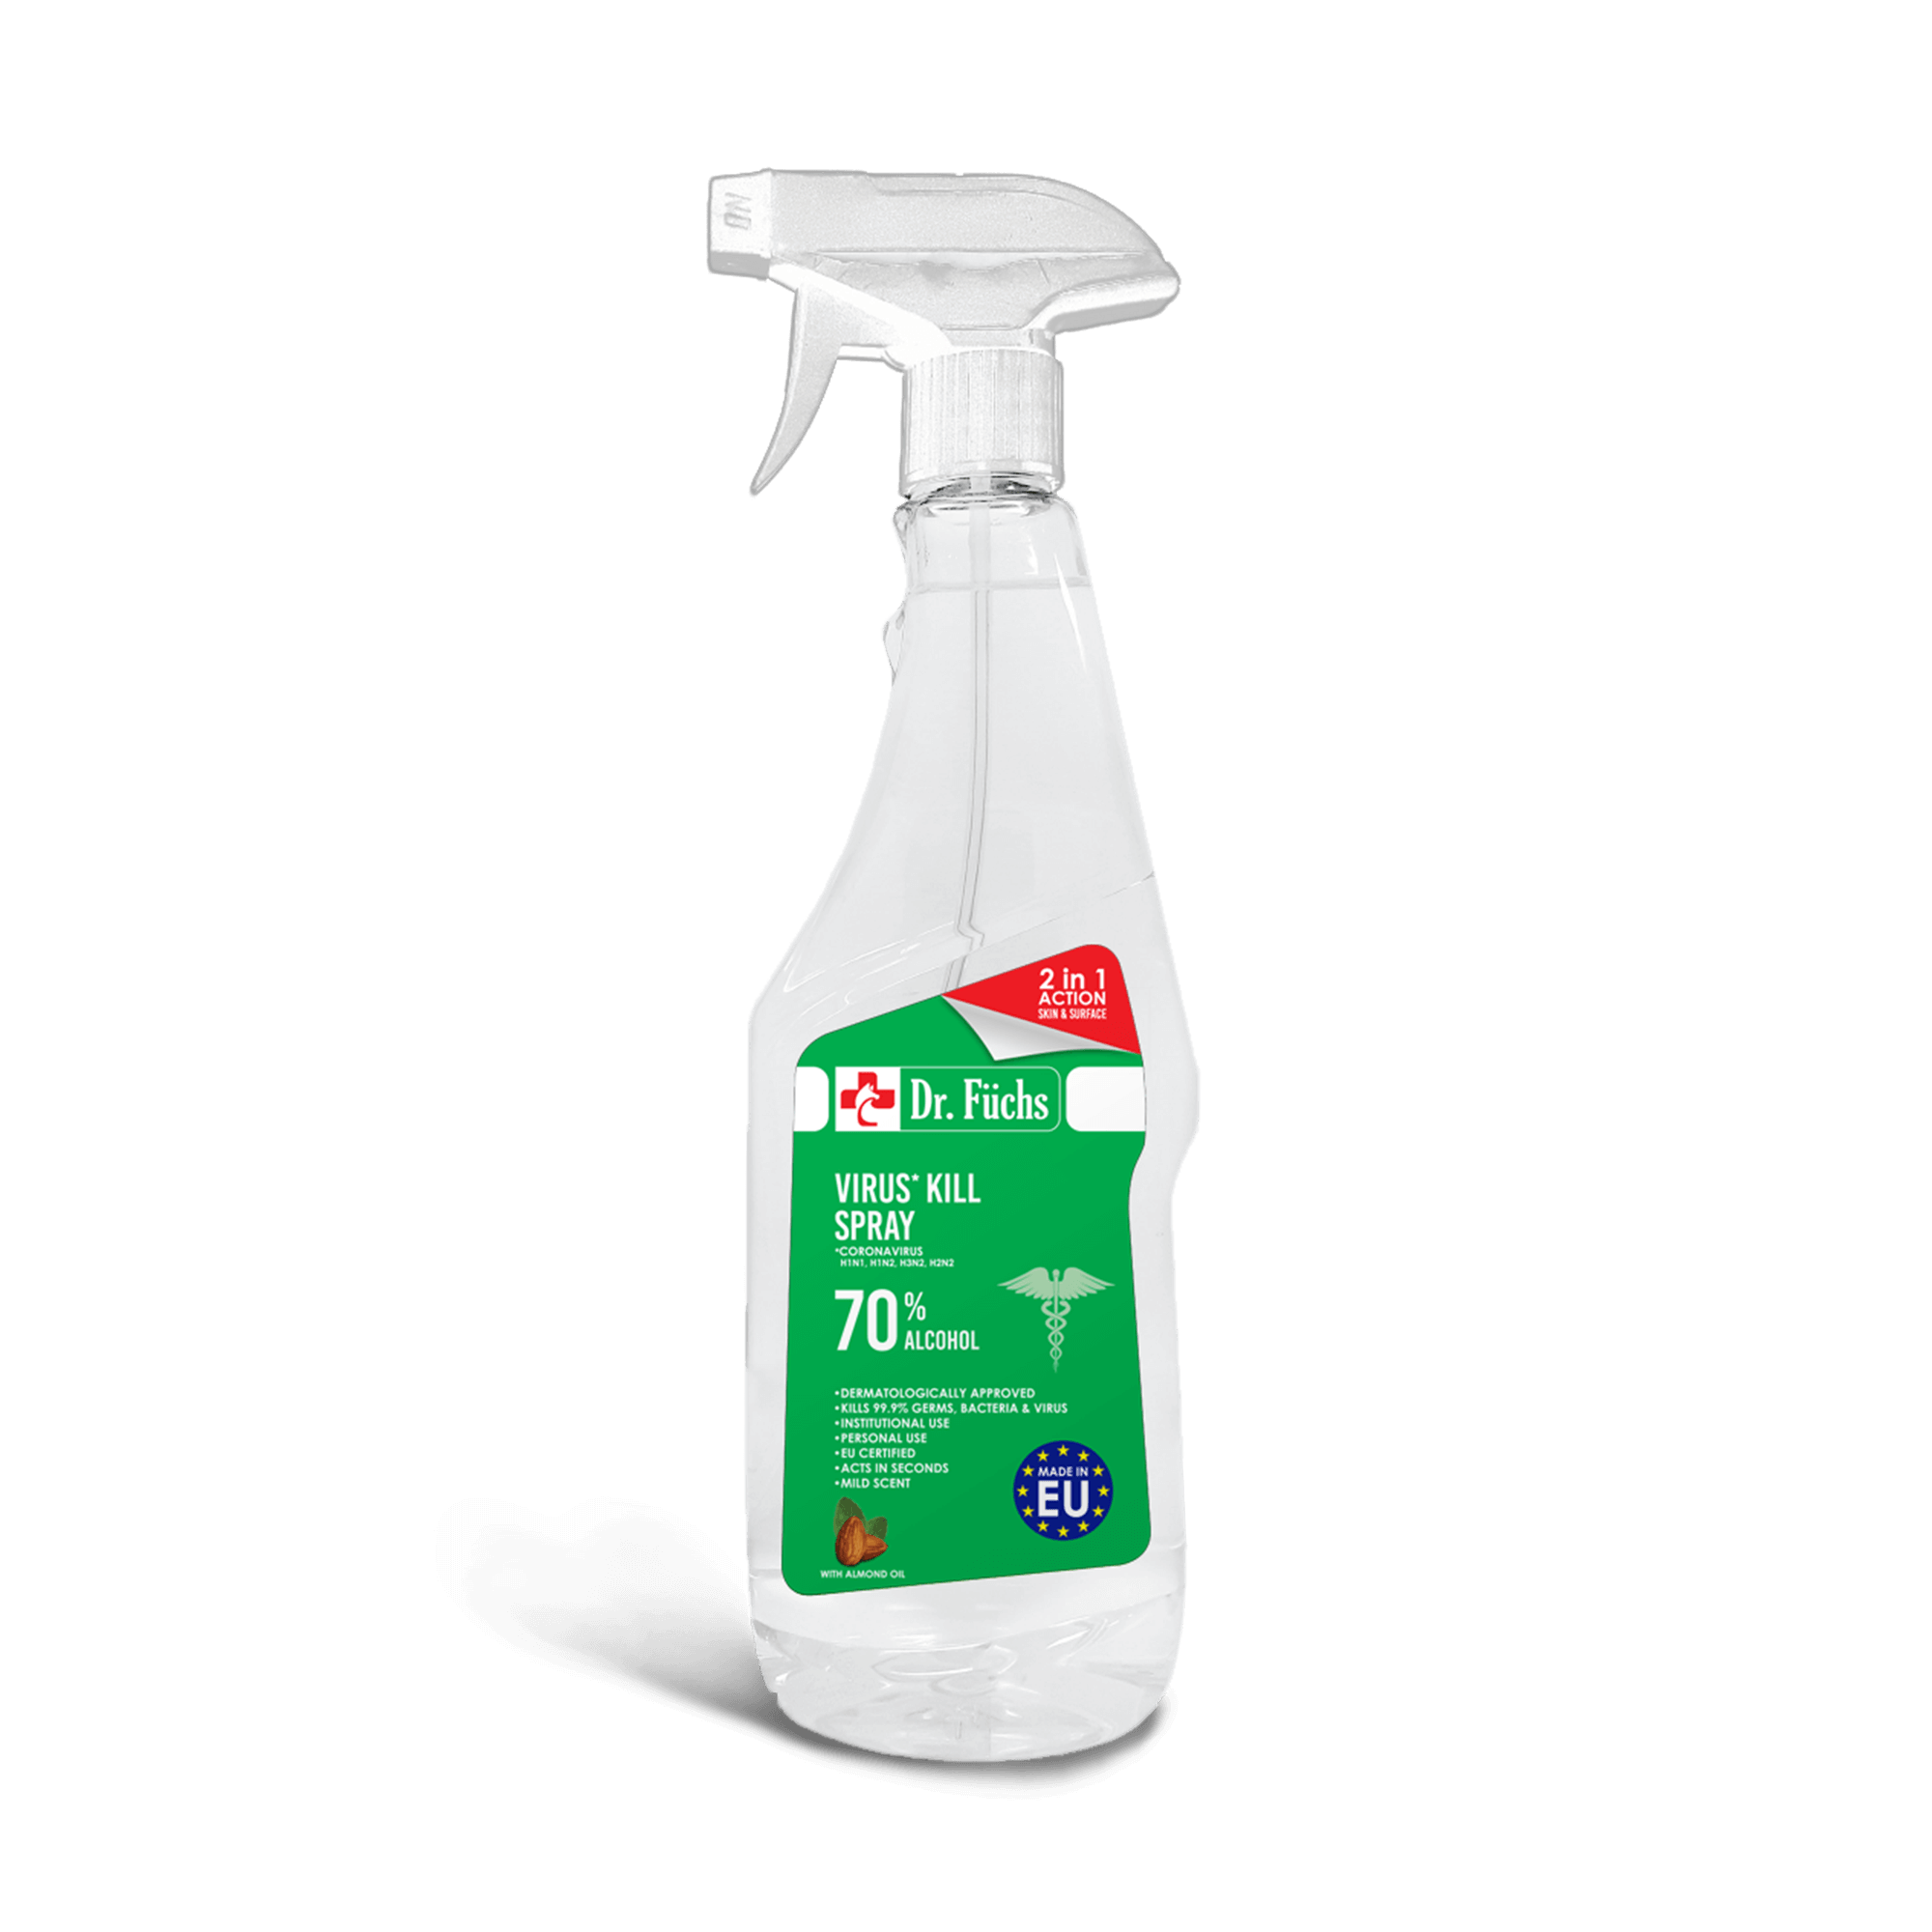 Dr Fuchs 2in1 action 750 ml